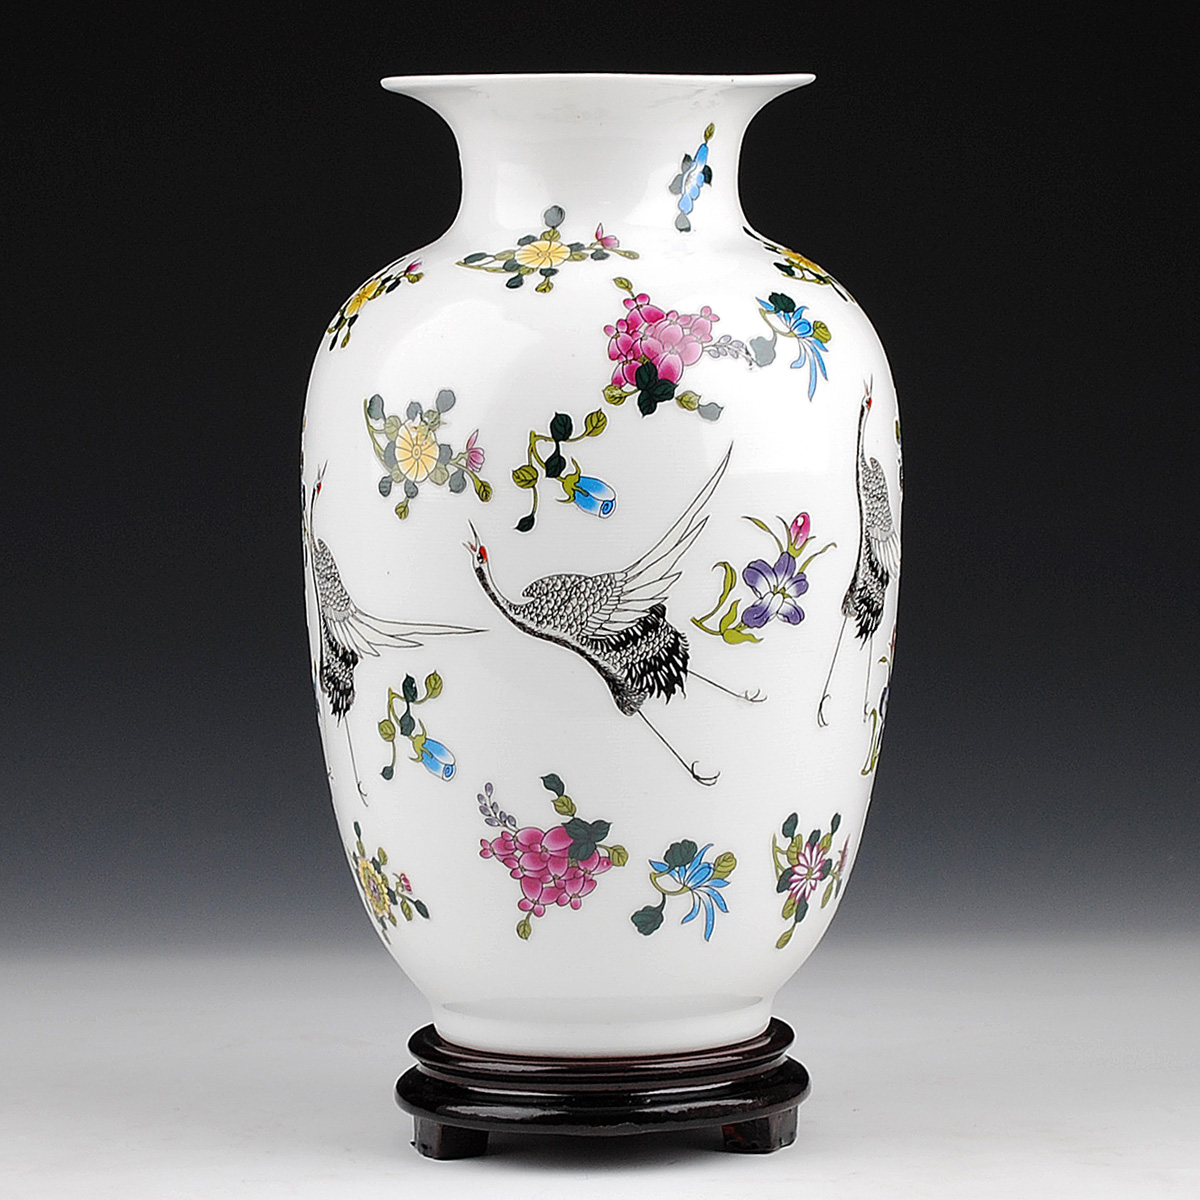 online buy wholesale modern vase and gift from china modern vase  - jingdezhen hongxuan features luminous ceramic vase decoration modernfashion crafts furniture and ornaments gifts(china